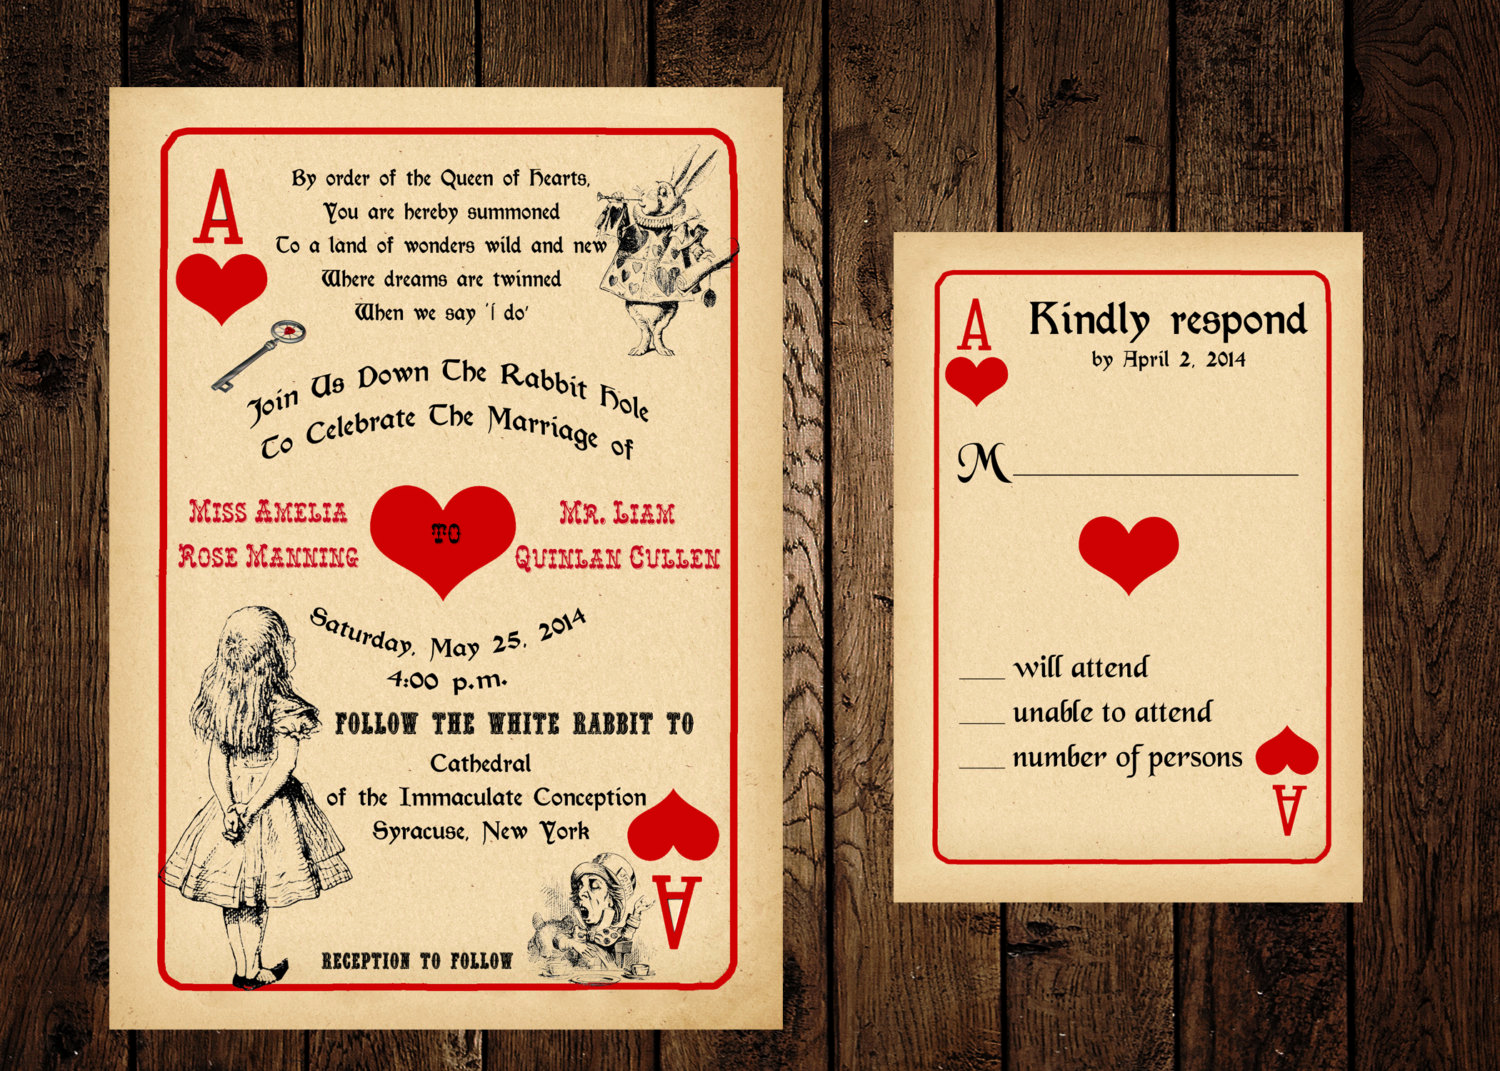 Alice In Wonderland Invitation Awesome Printable Alice In Wonderland Wedding Invitation and Response